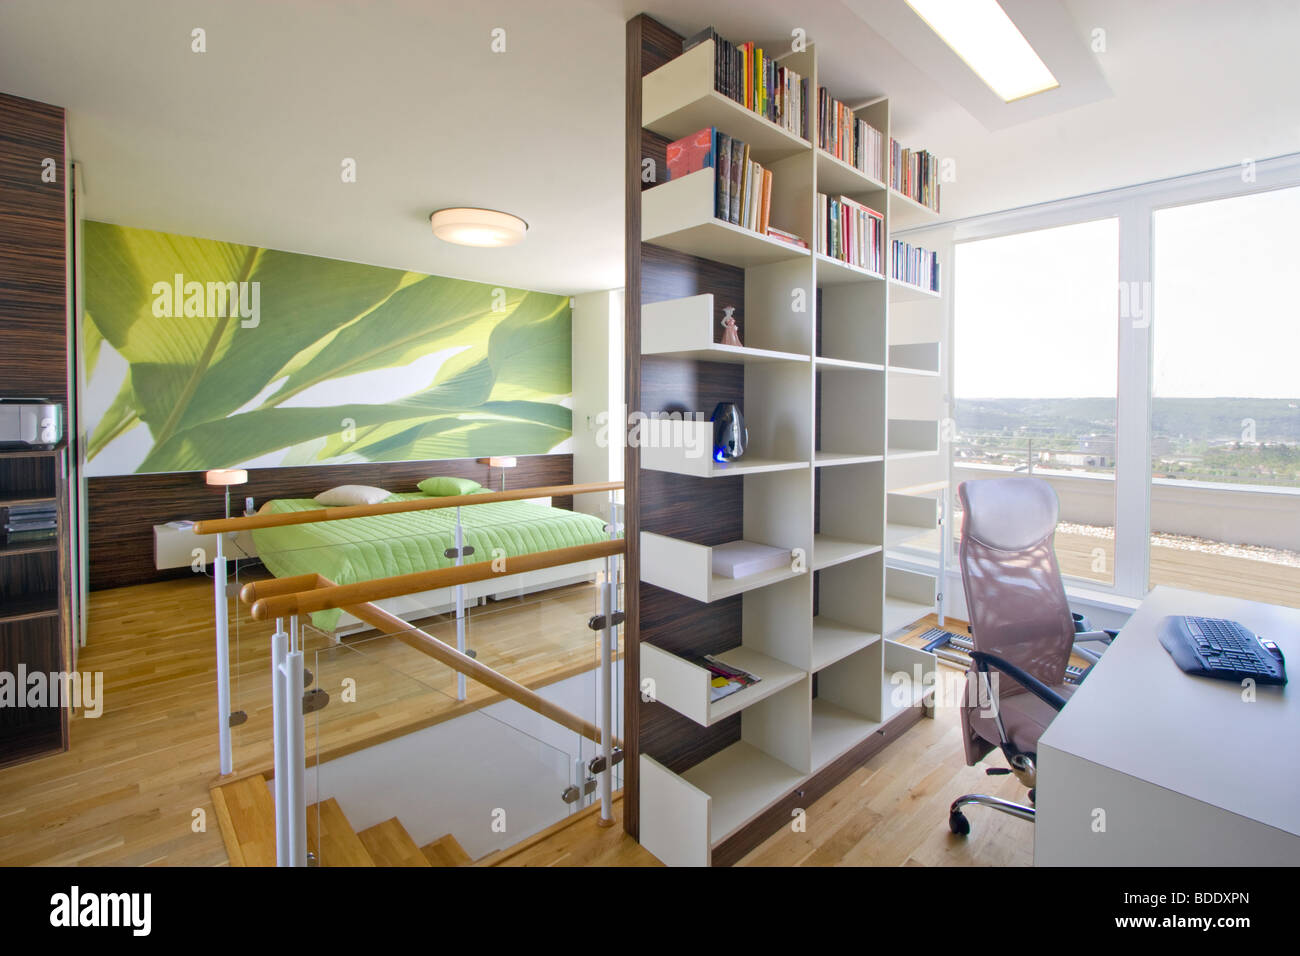 Bedroom and study in modern house - Stock Image